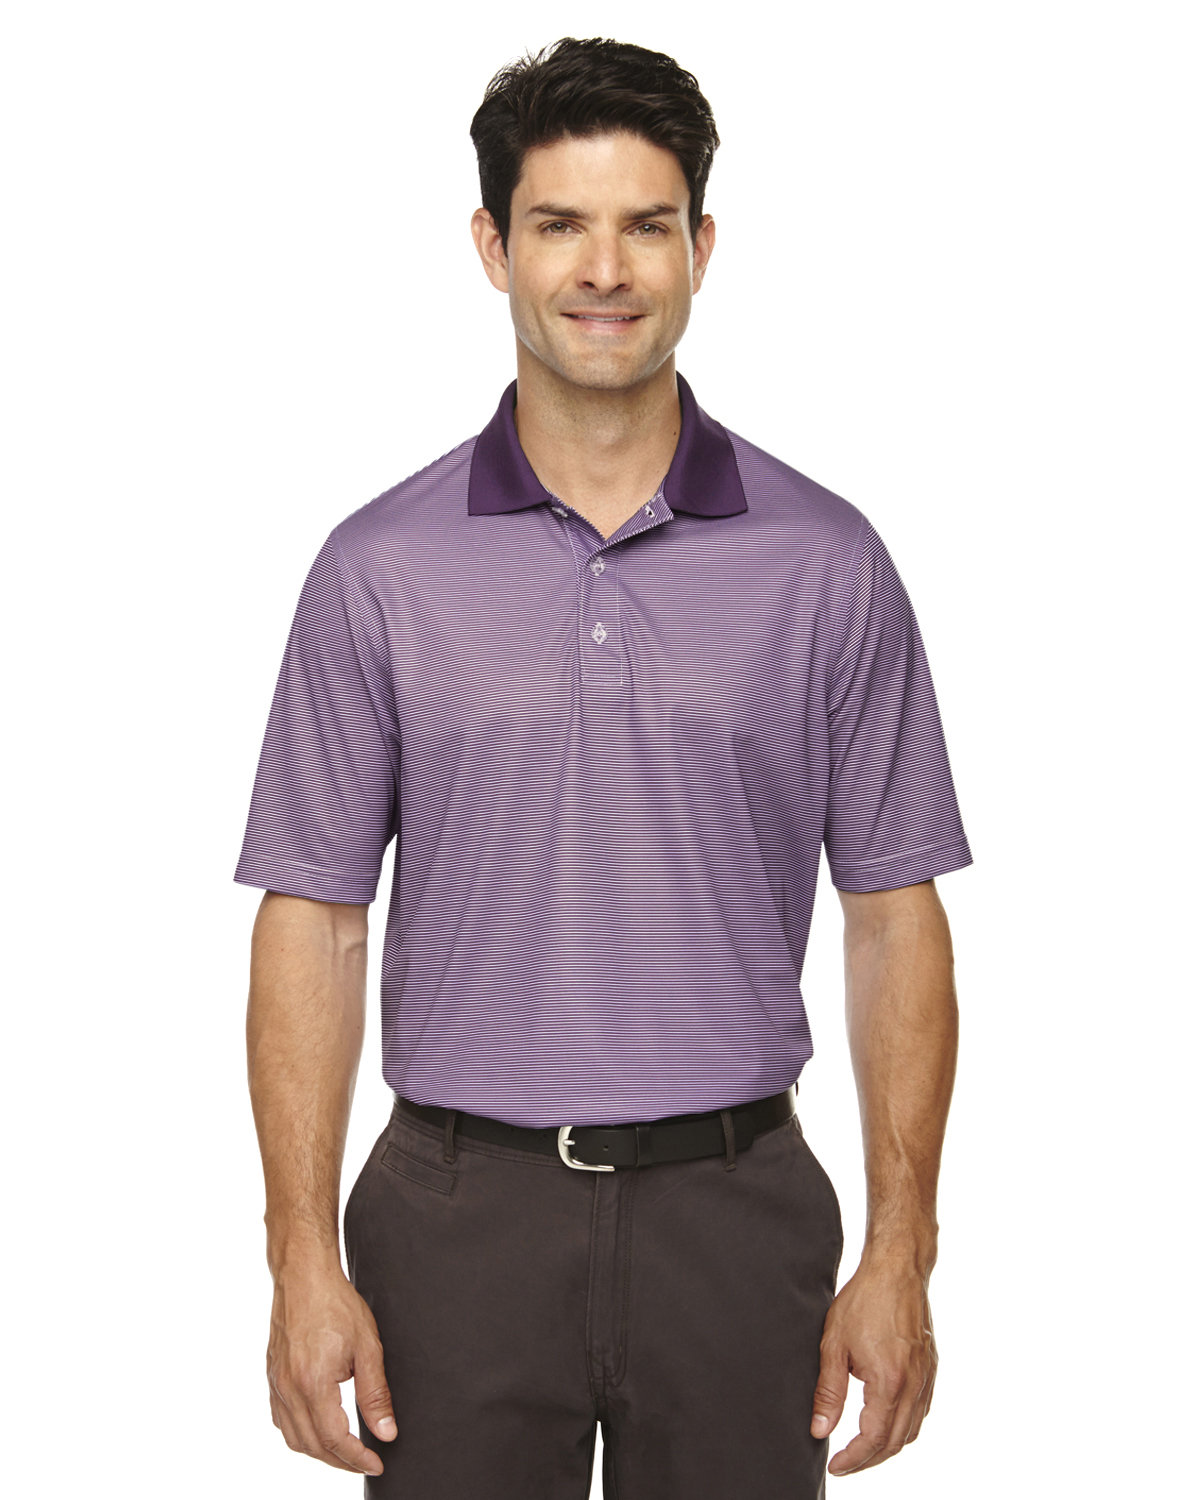 Extreme Men's Eperformance™ Launch Snag Protection Striped Polo MULBERRY PURPLE